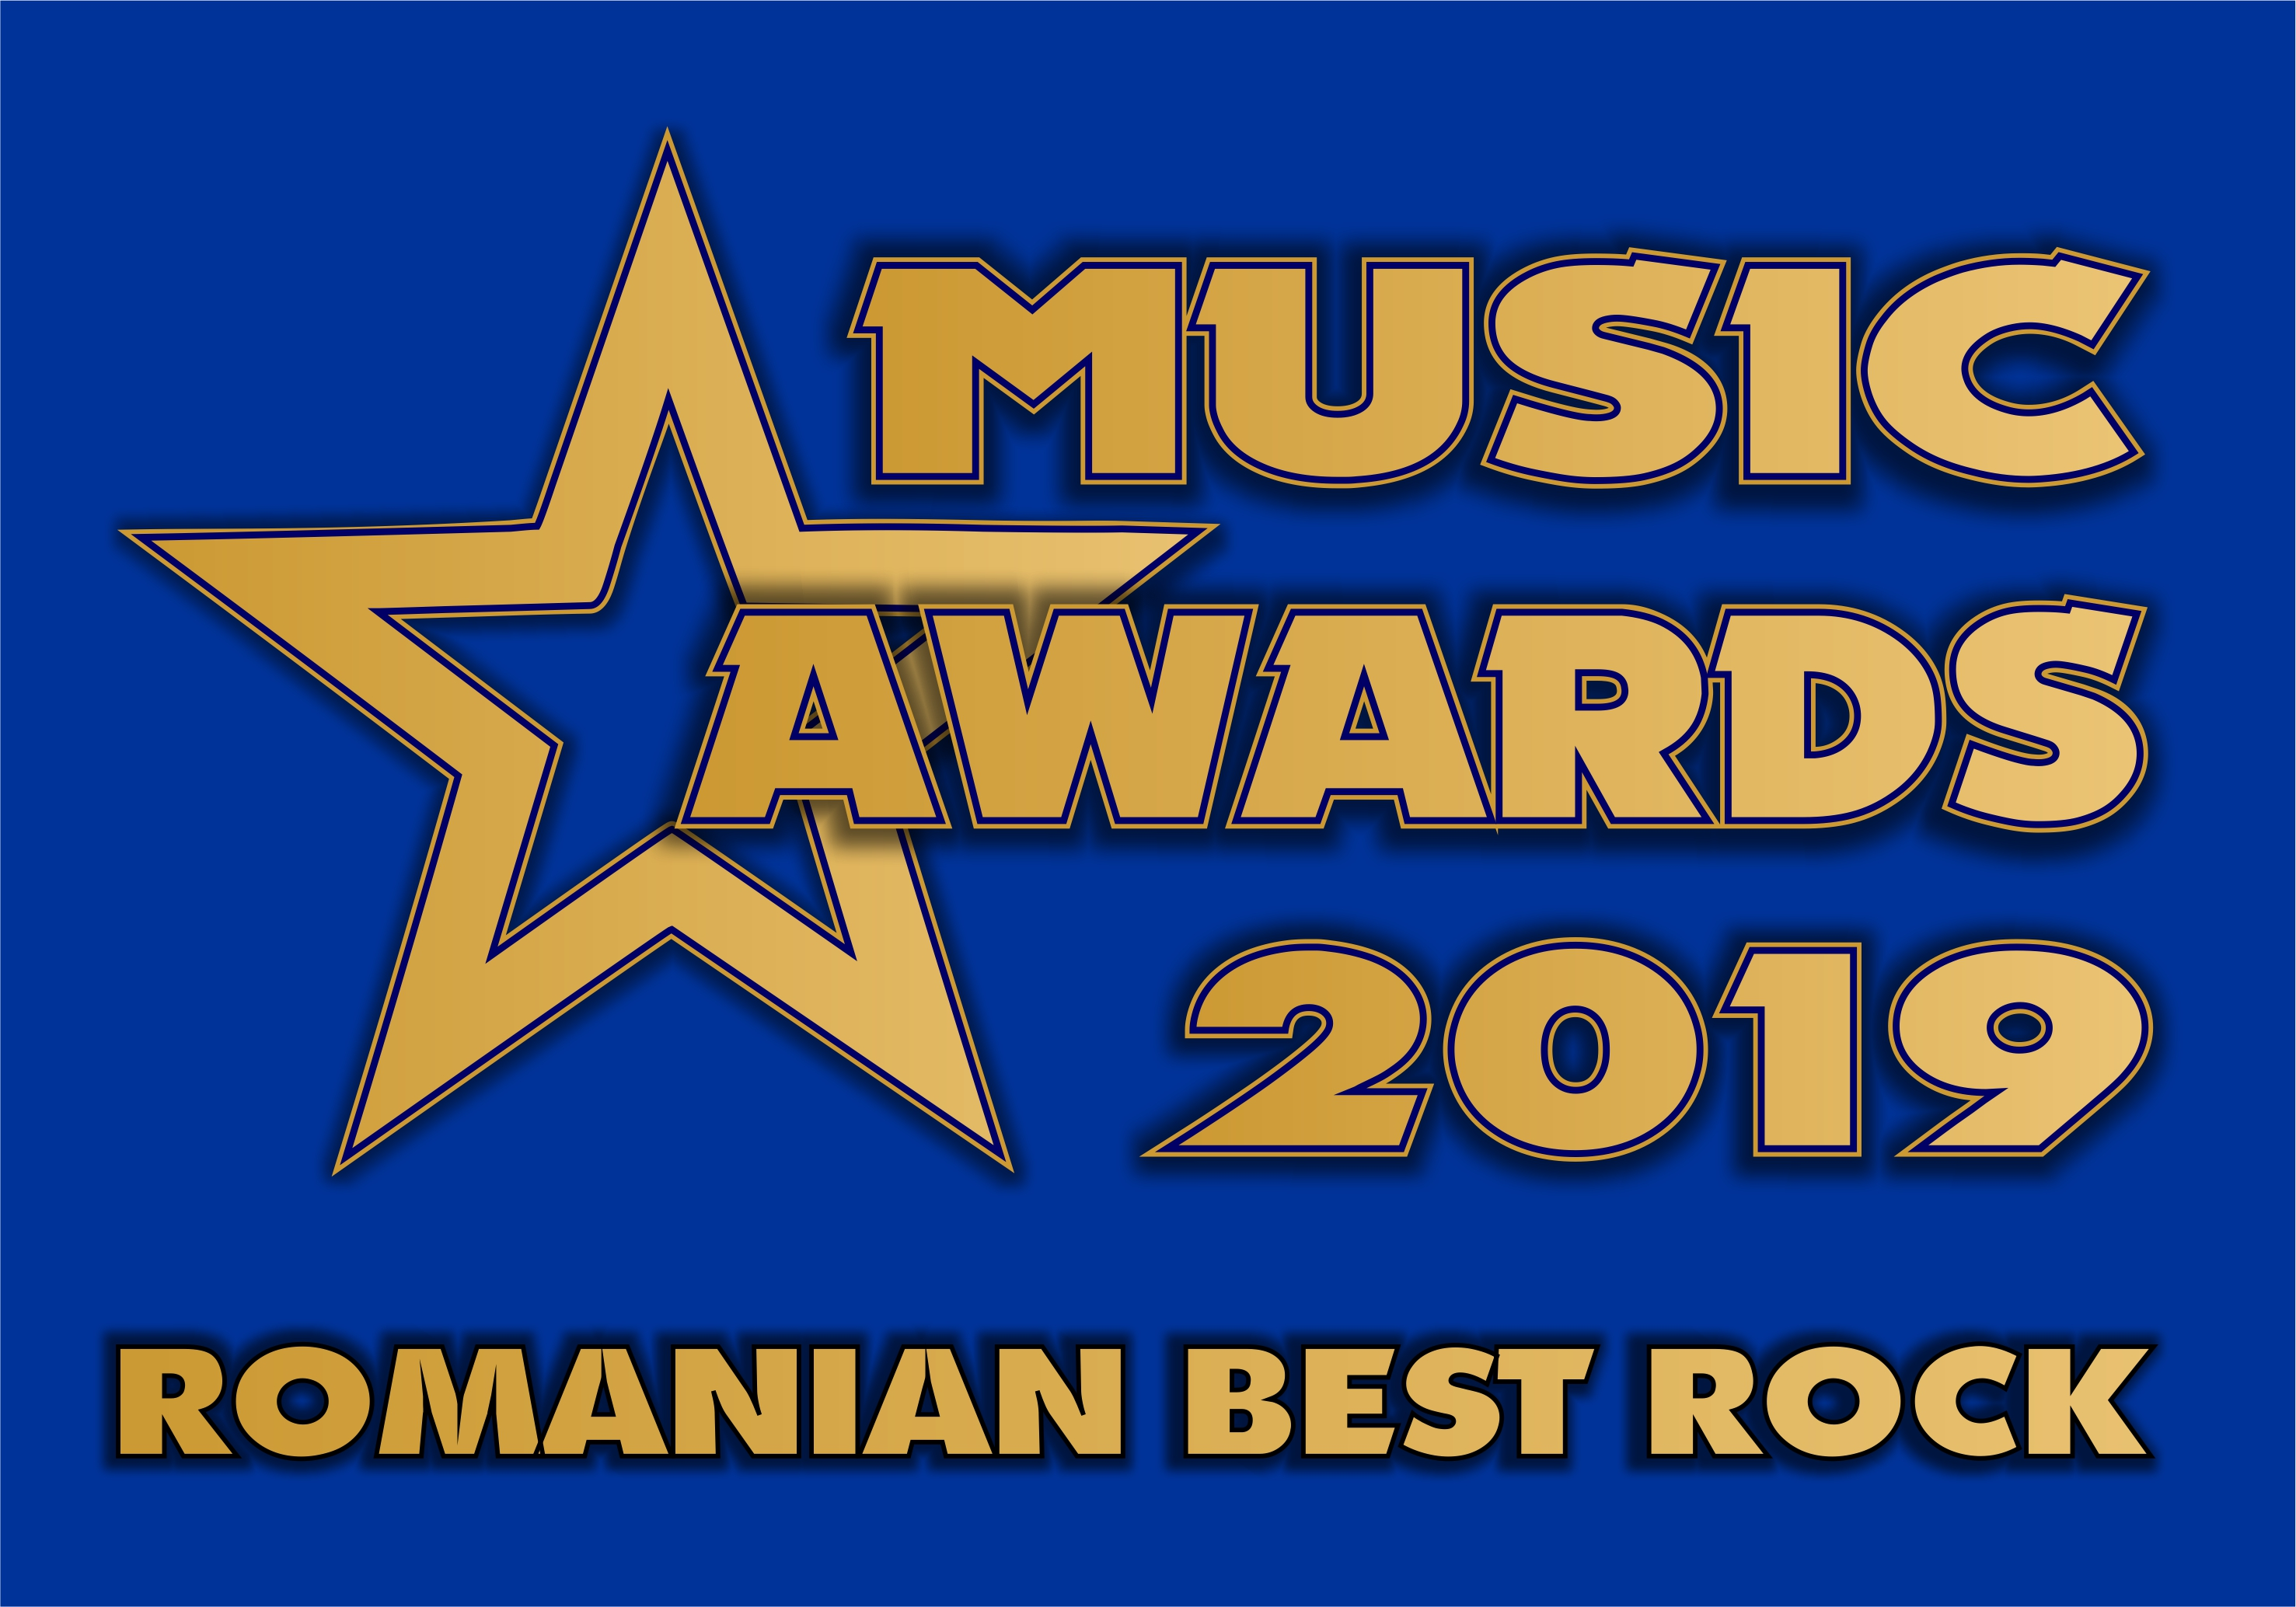 romanian-best-rock.jpg